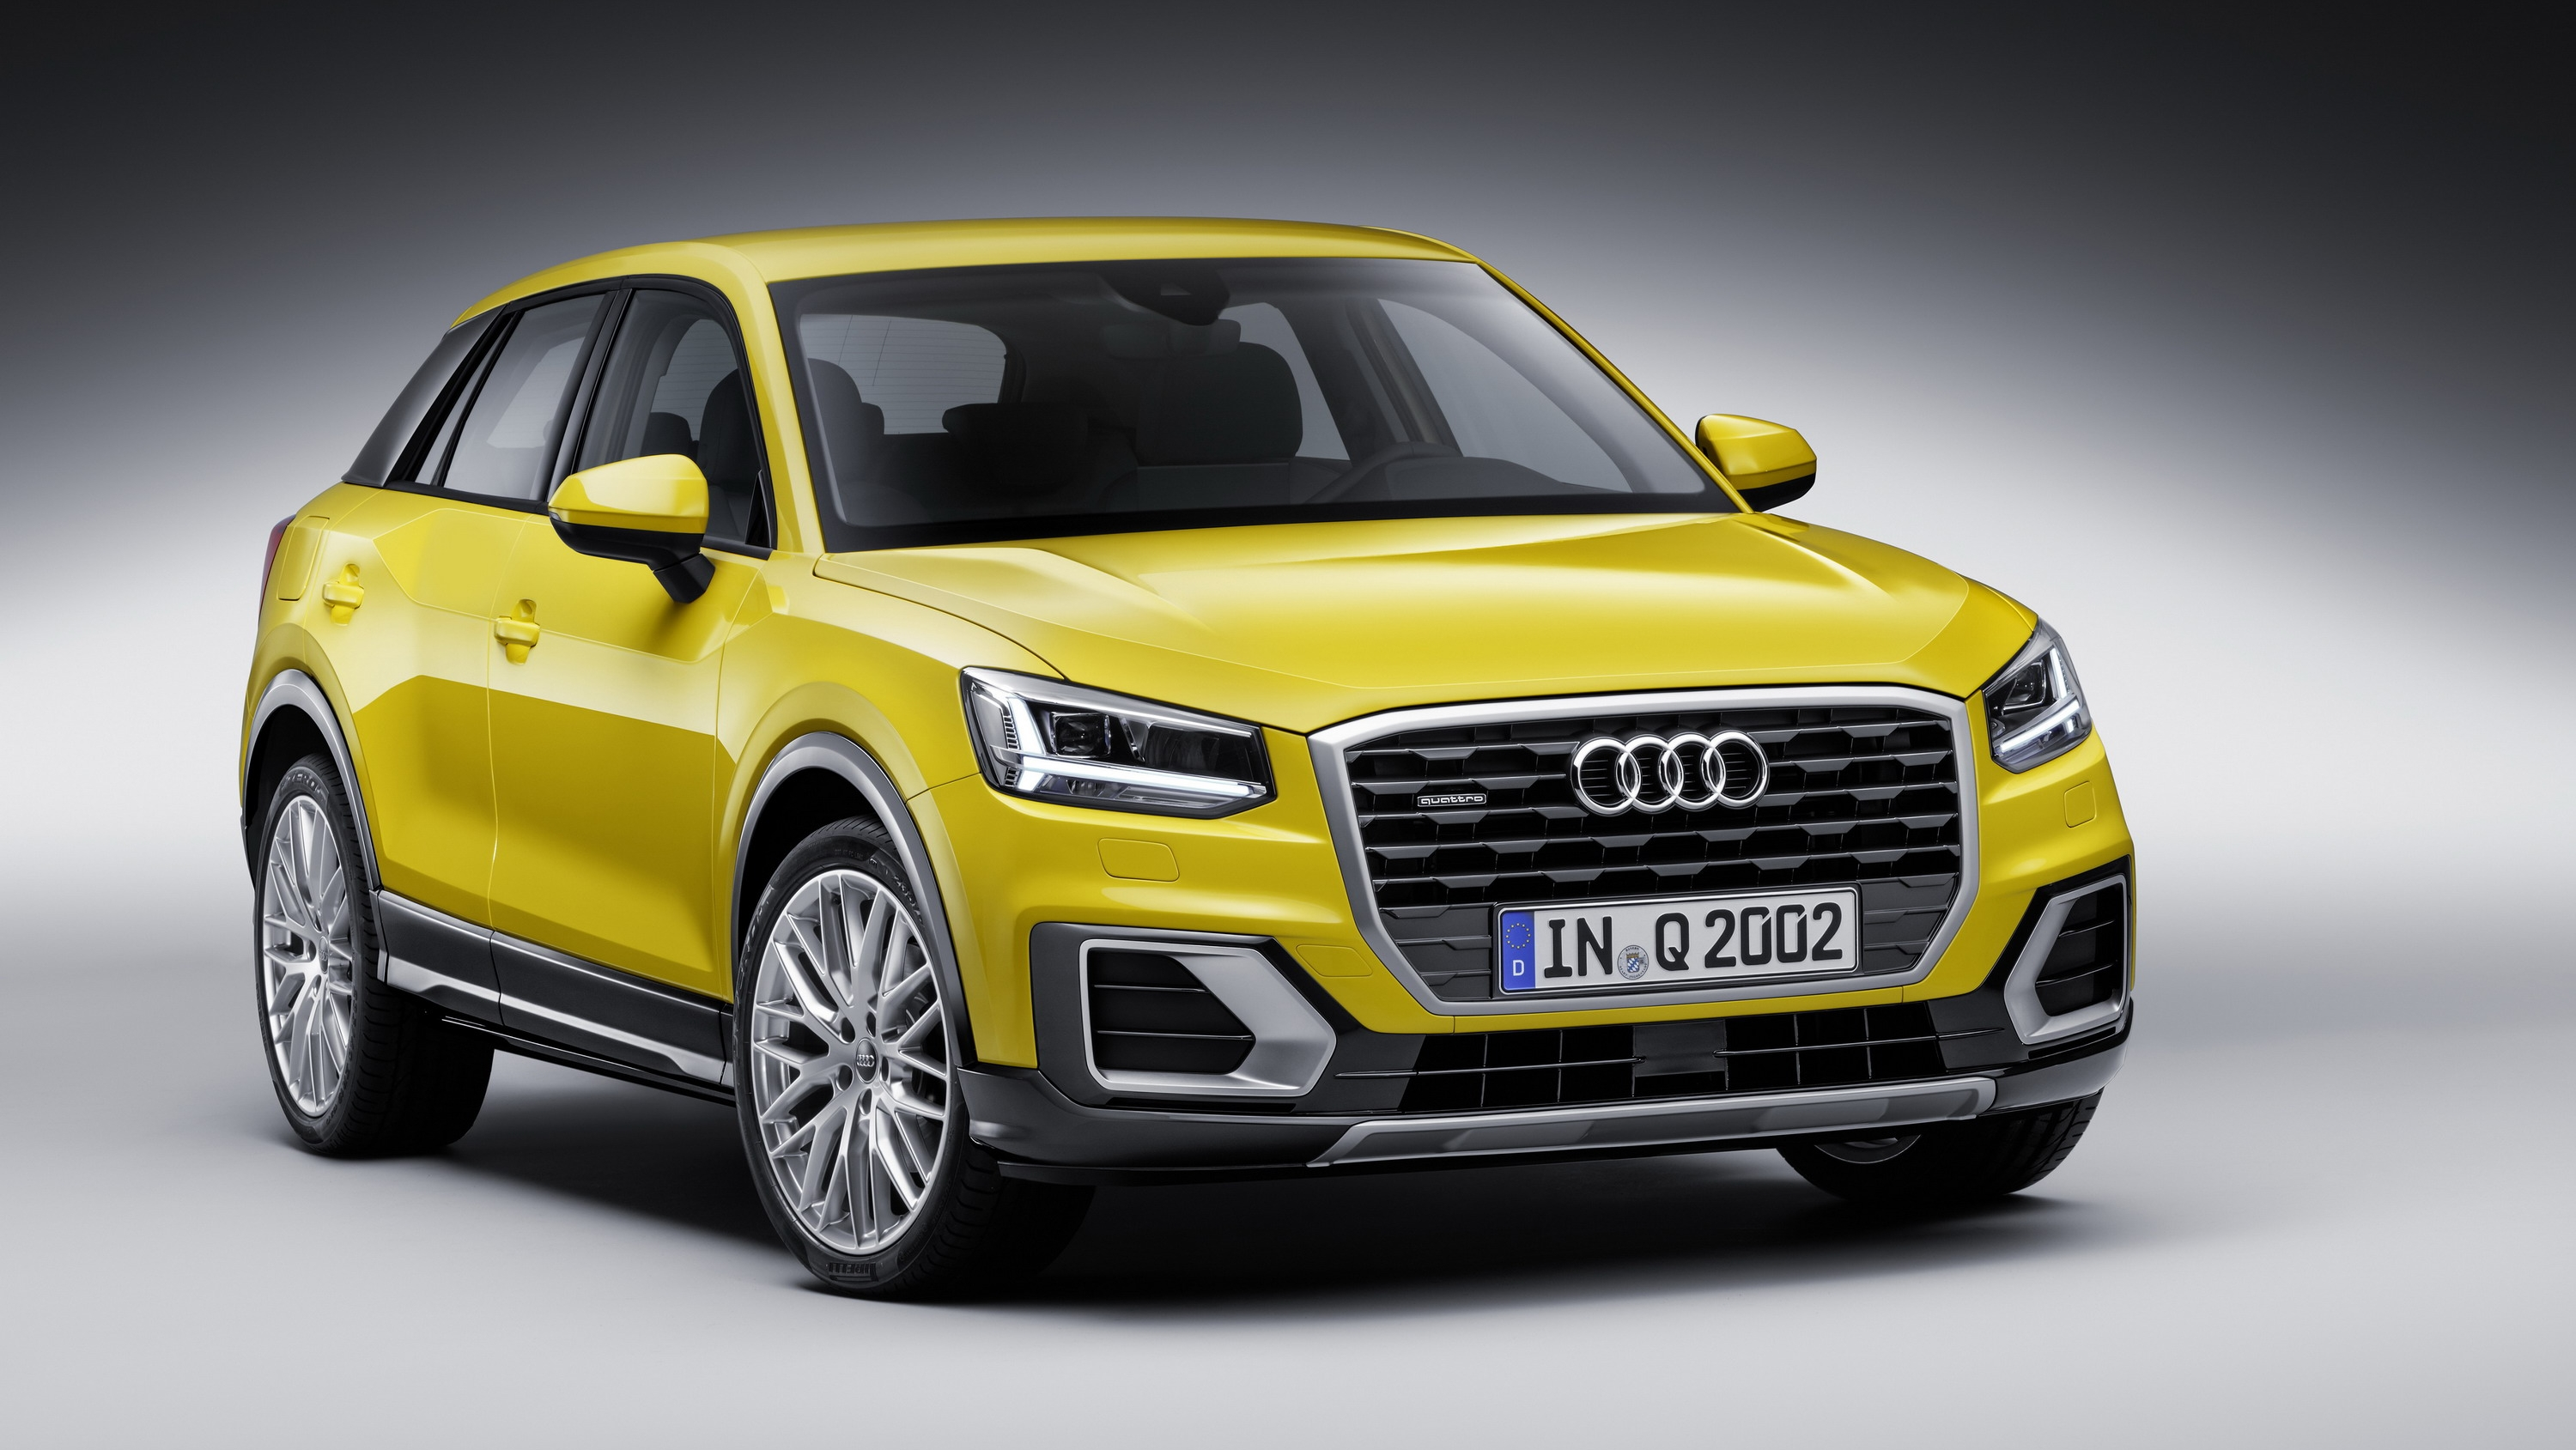 highly life headlights suv single s and octagonal updated still small the sharp but frame are differently it audi race grille those chrome motoring interpreted enters sublime framed